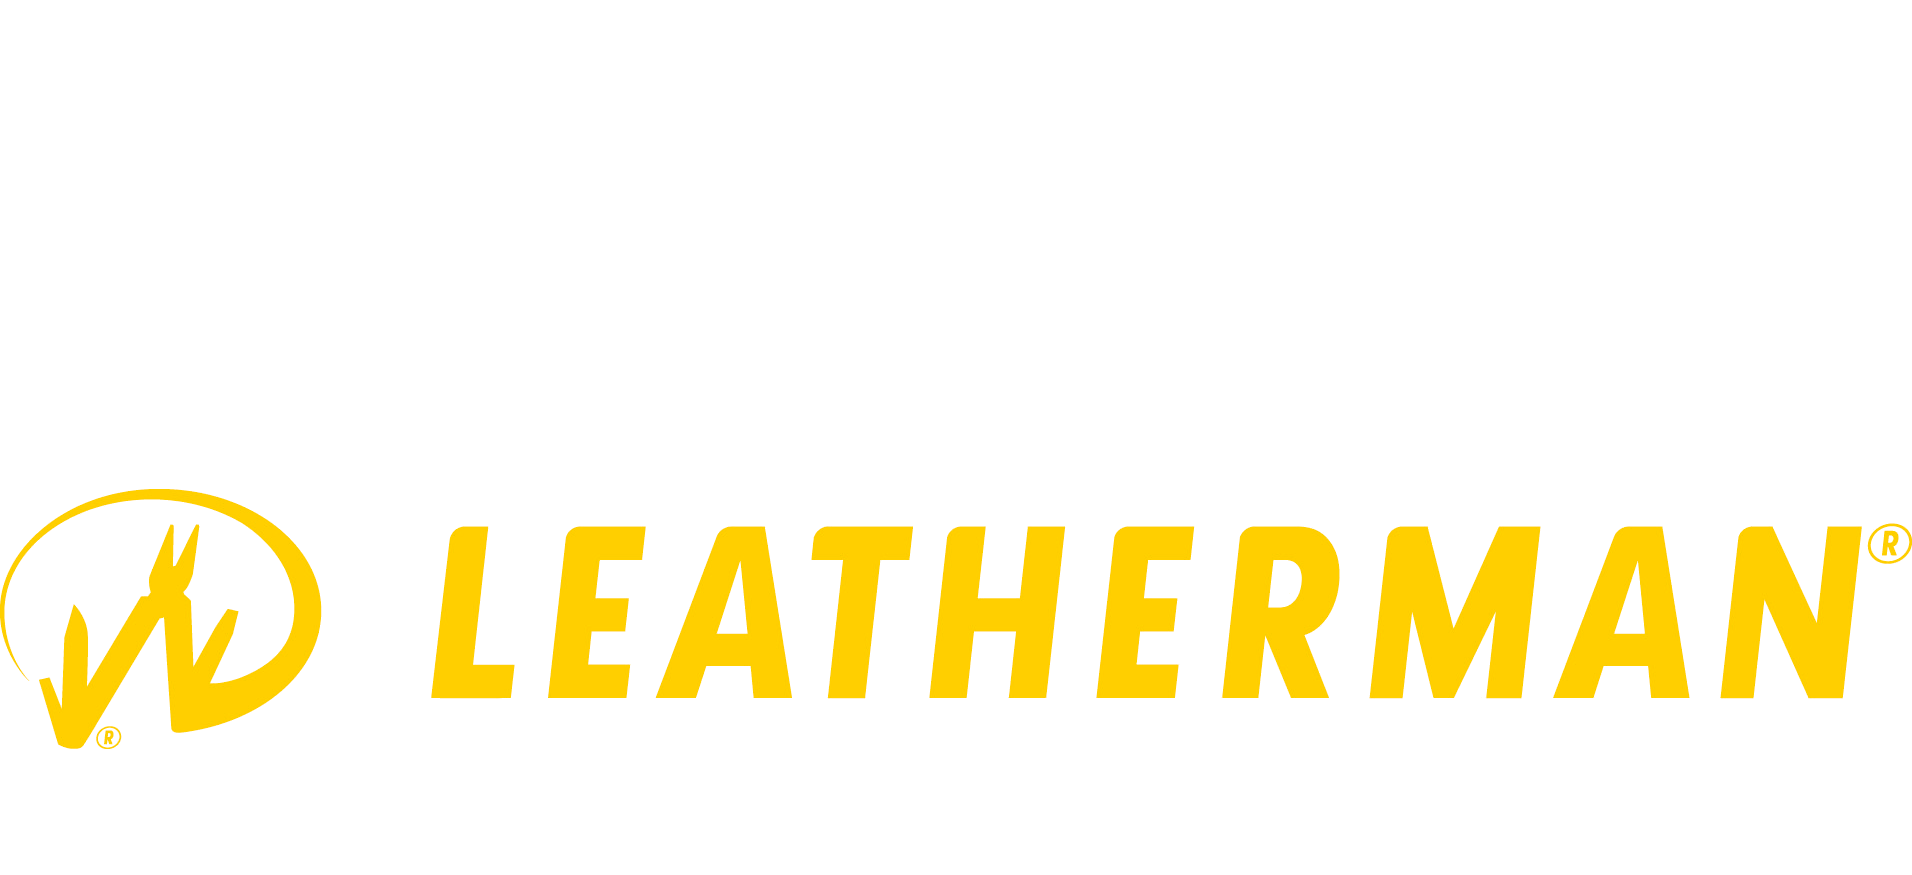 Leatherman Corporate Yellow